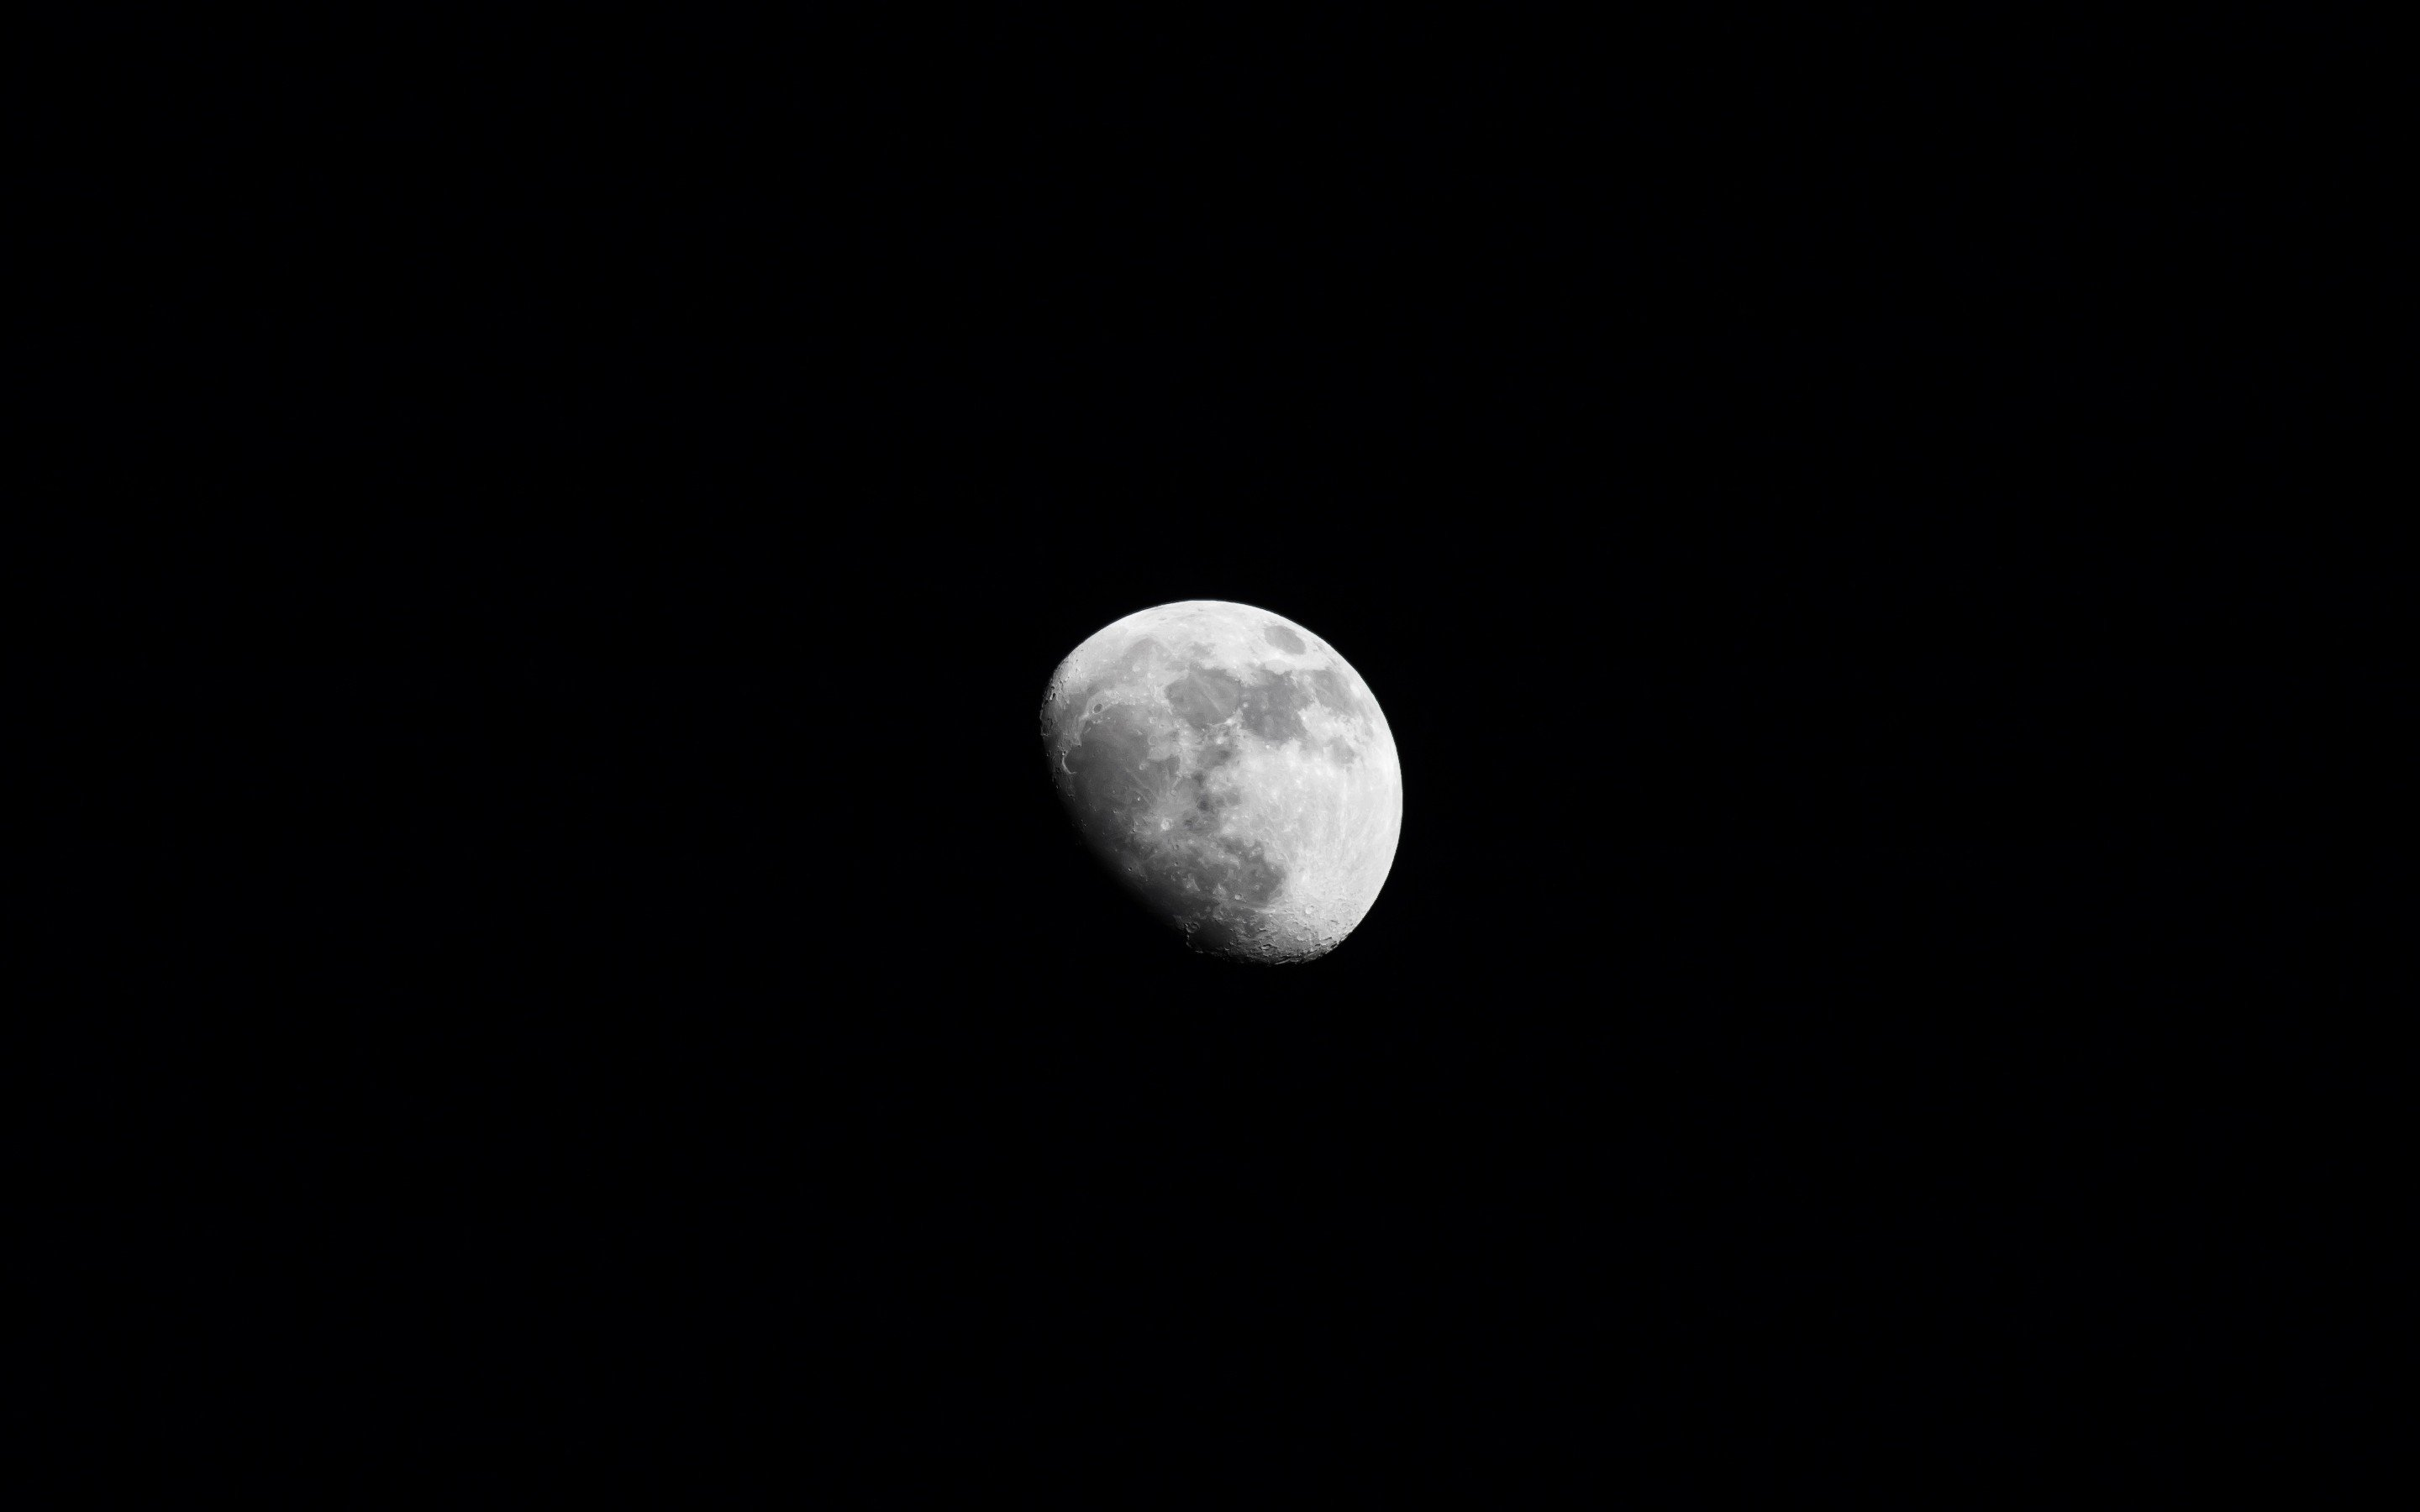 photography, Monochrome, Moon, Space Wallpaper